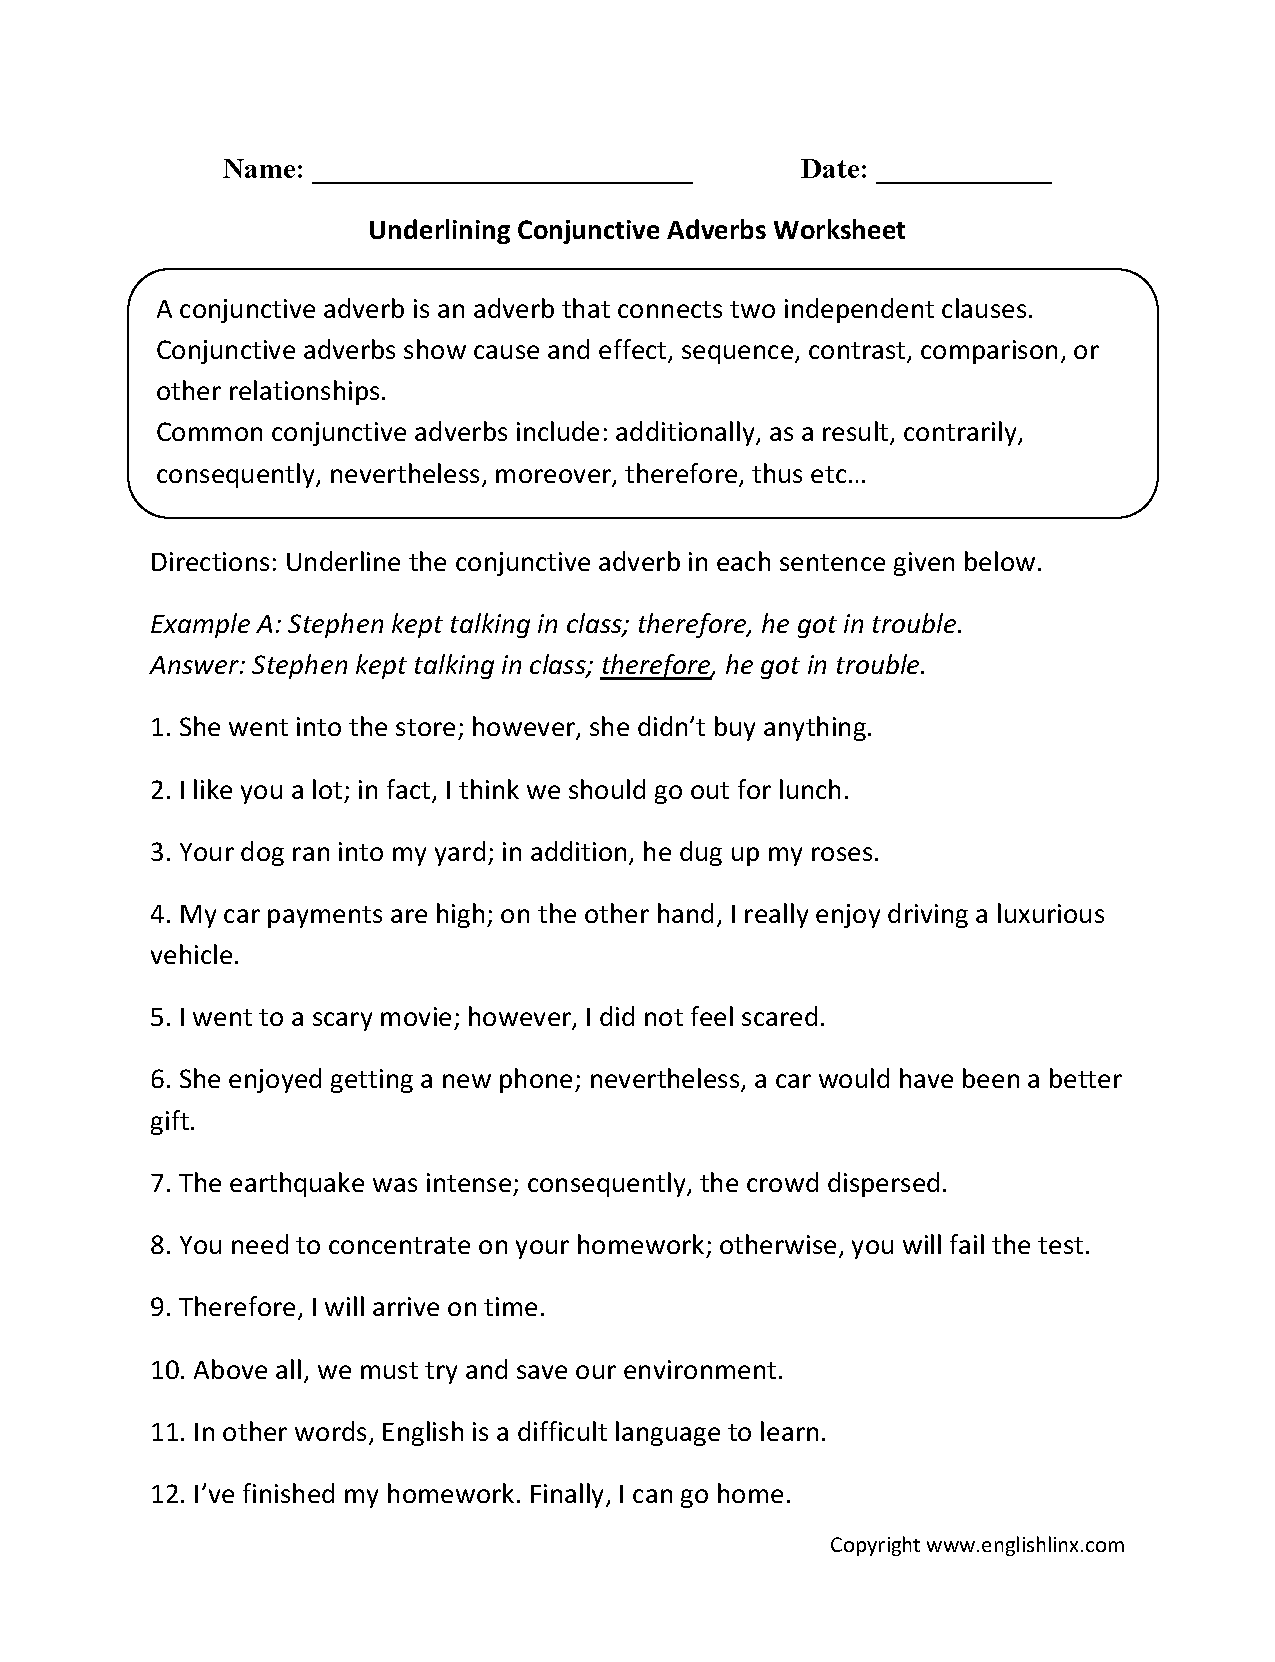 Weirdmailus  Marvellous Englishlinxcom  Conjunctions Worksheets With Gorgeous Worksheet With Attractive Vincent Van Gogh Worksheet Also Prediction Worksheets For Nd Grade In Addition Math Problems Printable Worksheets And Directed Numbers Worksheet As Well As Plotting Coordinates In  Quadrants Worksheet Additionally Ions Worksheets From Englishlinxcom With Weirdmailus  Gorgeous Englishlinxcom  Conjunctions Worksheets With Attractive Worksheet And Marvellous Vincent Van Gogh Worksheet Also Prediction Worksheets For Nd Grade In Addition Math Problems Printable Worksheets From Englishlinxcom